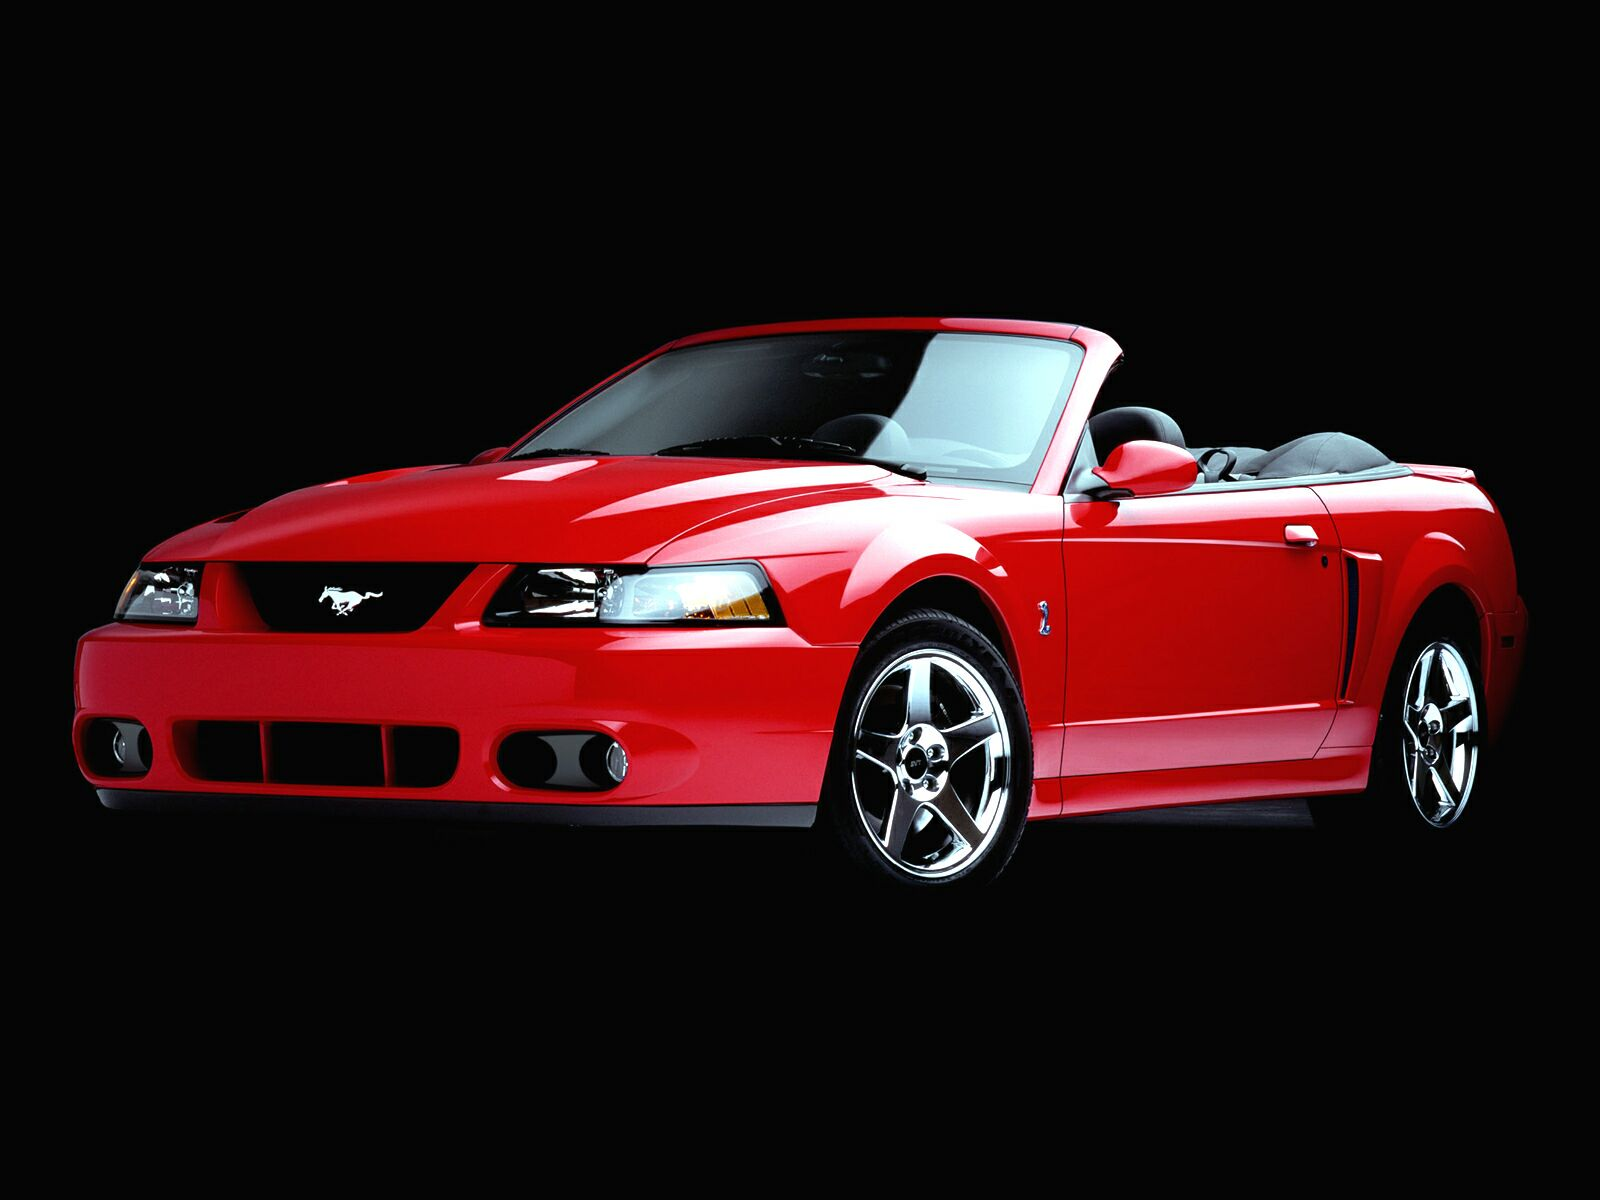 Ford Mustang Cobra photo 10619